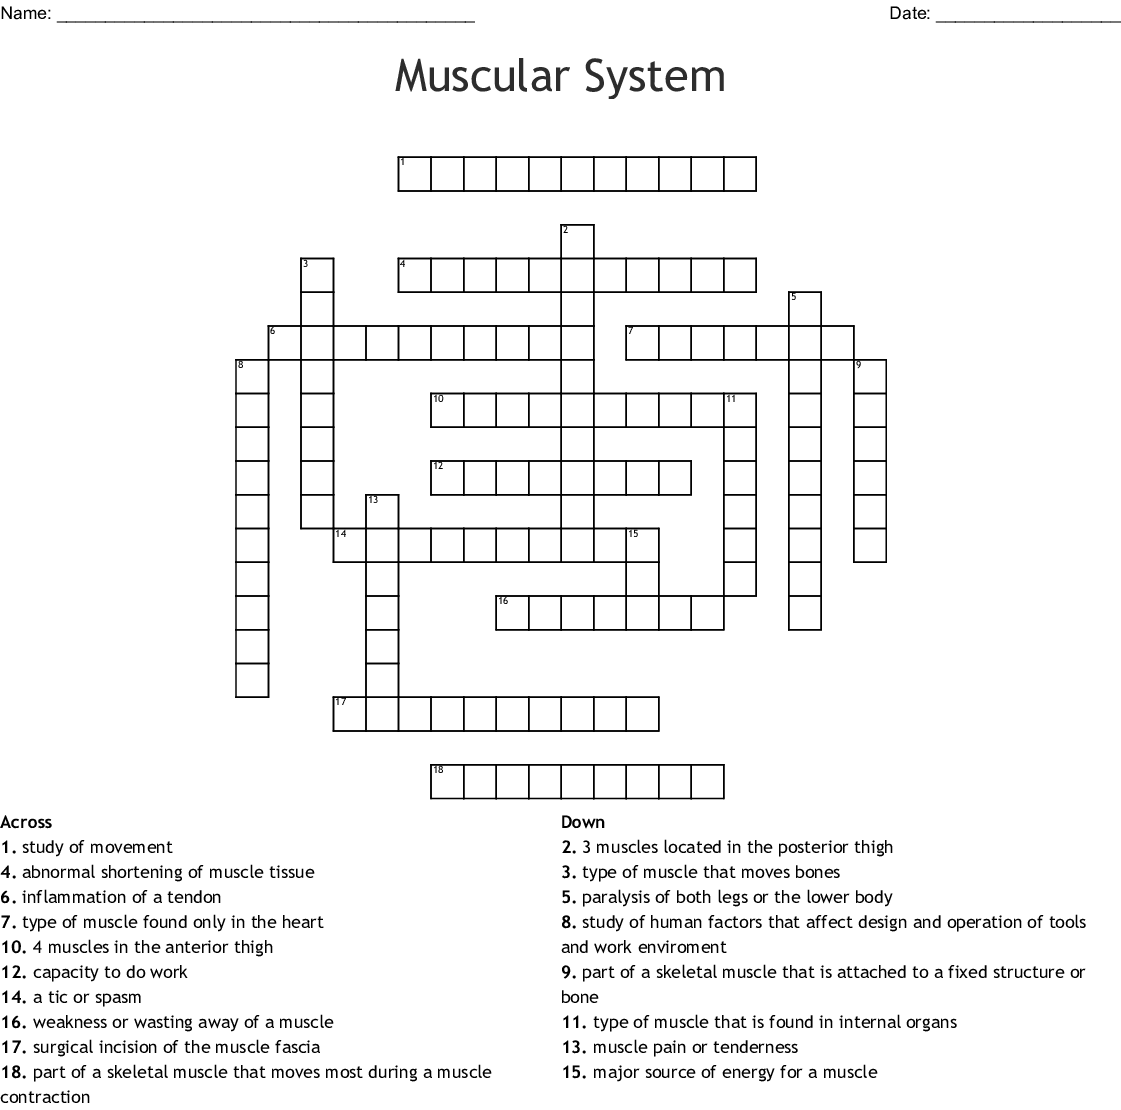 Muscular System Crossword